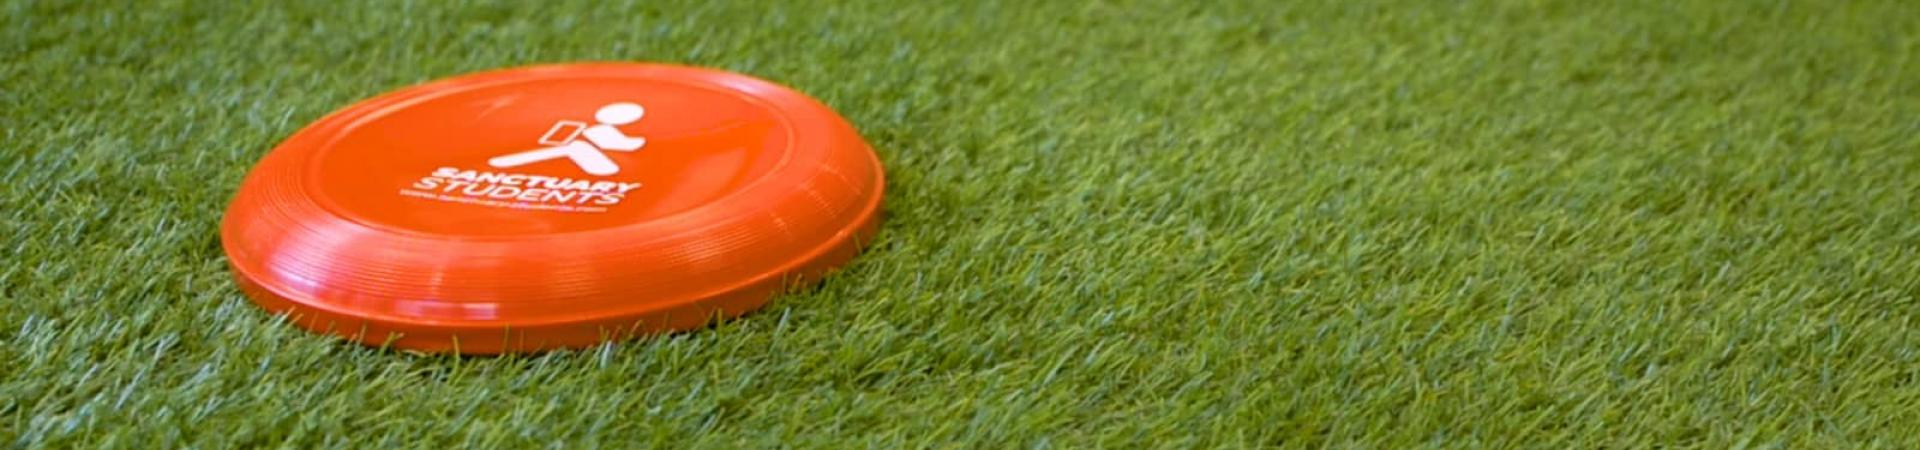 A red Sanctuary Students frisbee lying on grass